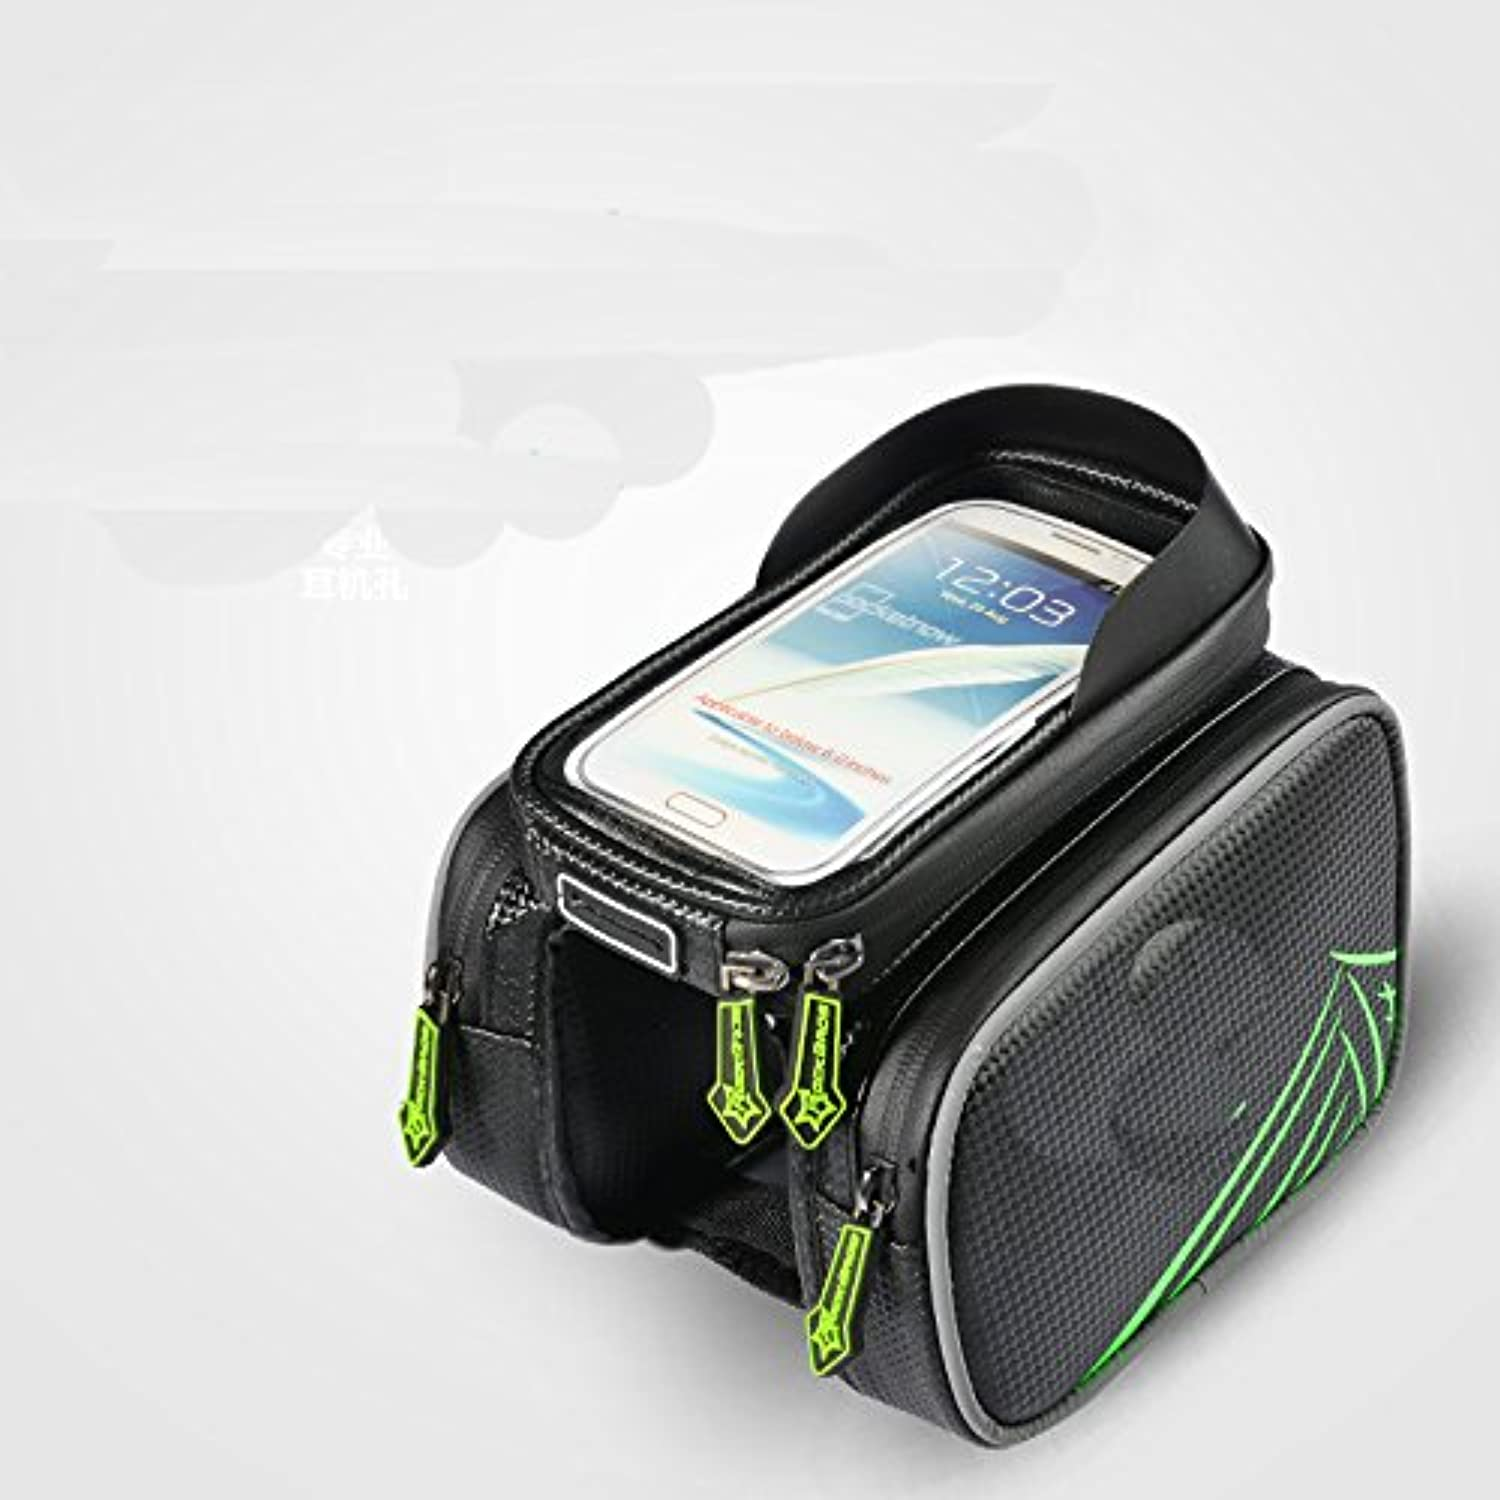 Bike Bag Pannier With Mobile Phone Holder. Compatible With iPhones, Samsung Galaxy & More,Style 11